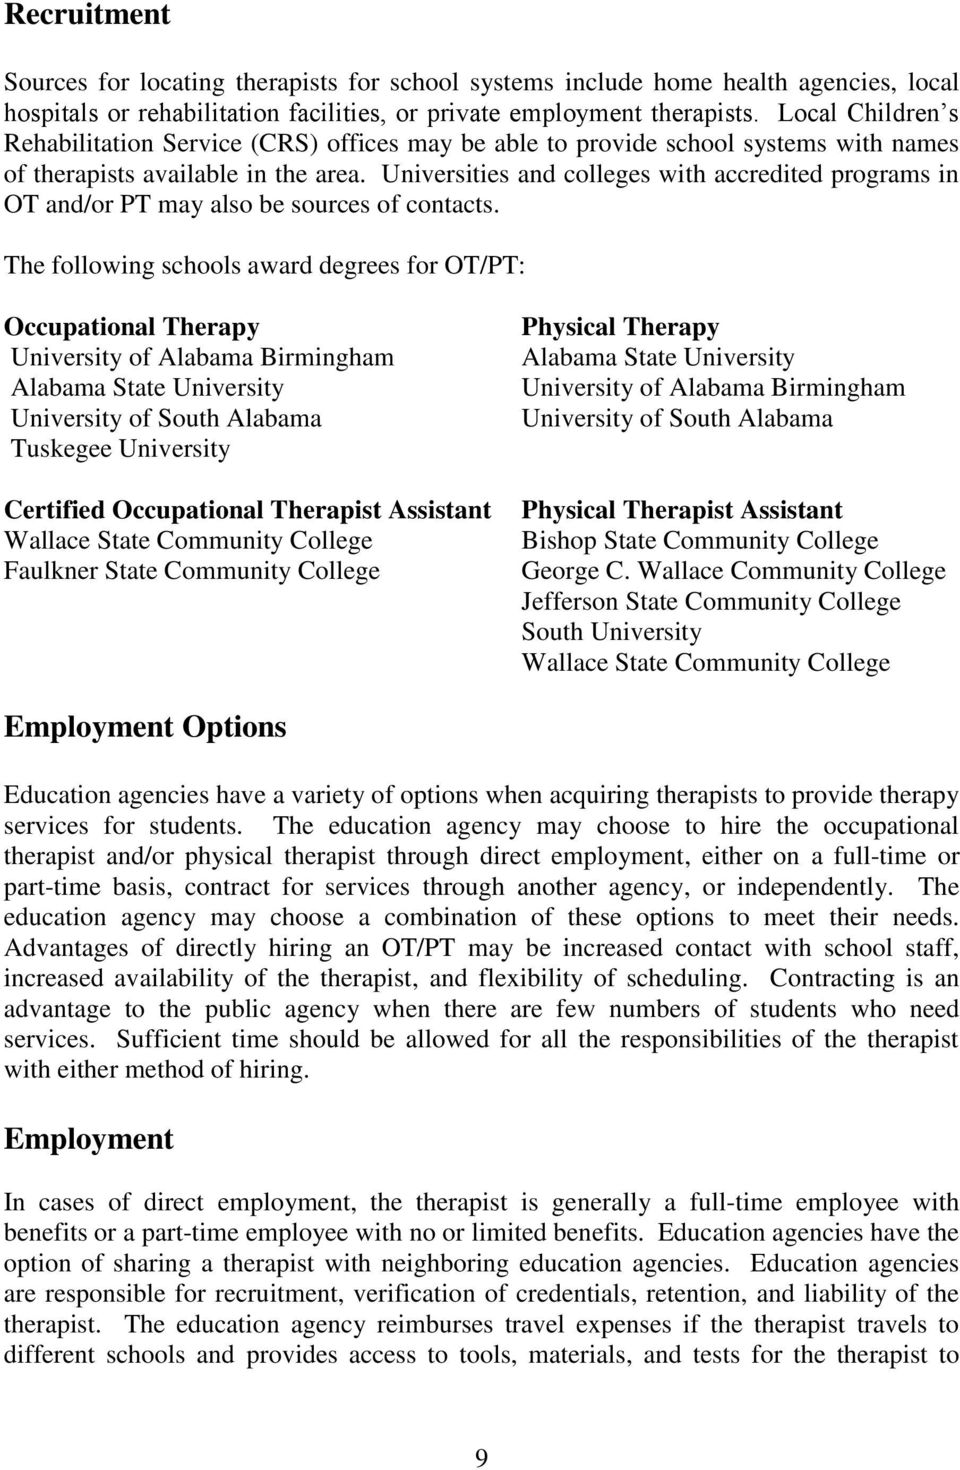 Guidelines for Occupational Therapy and Physical Therapy for